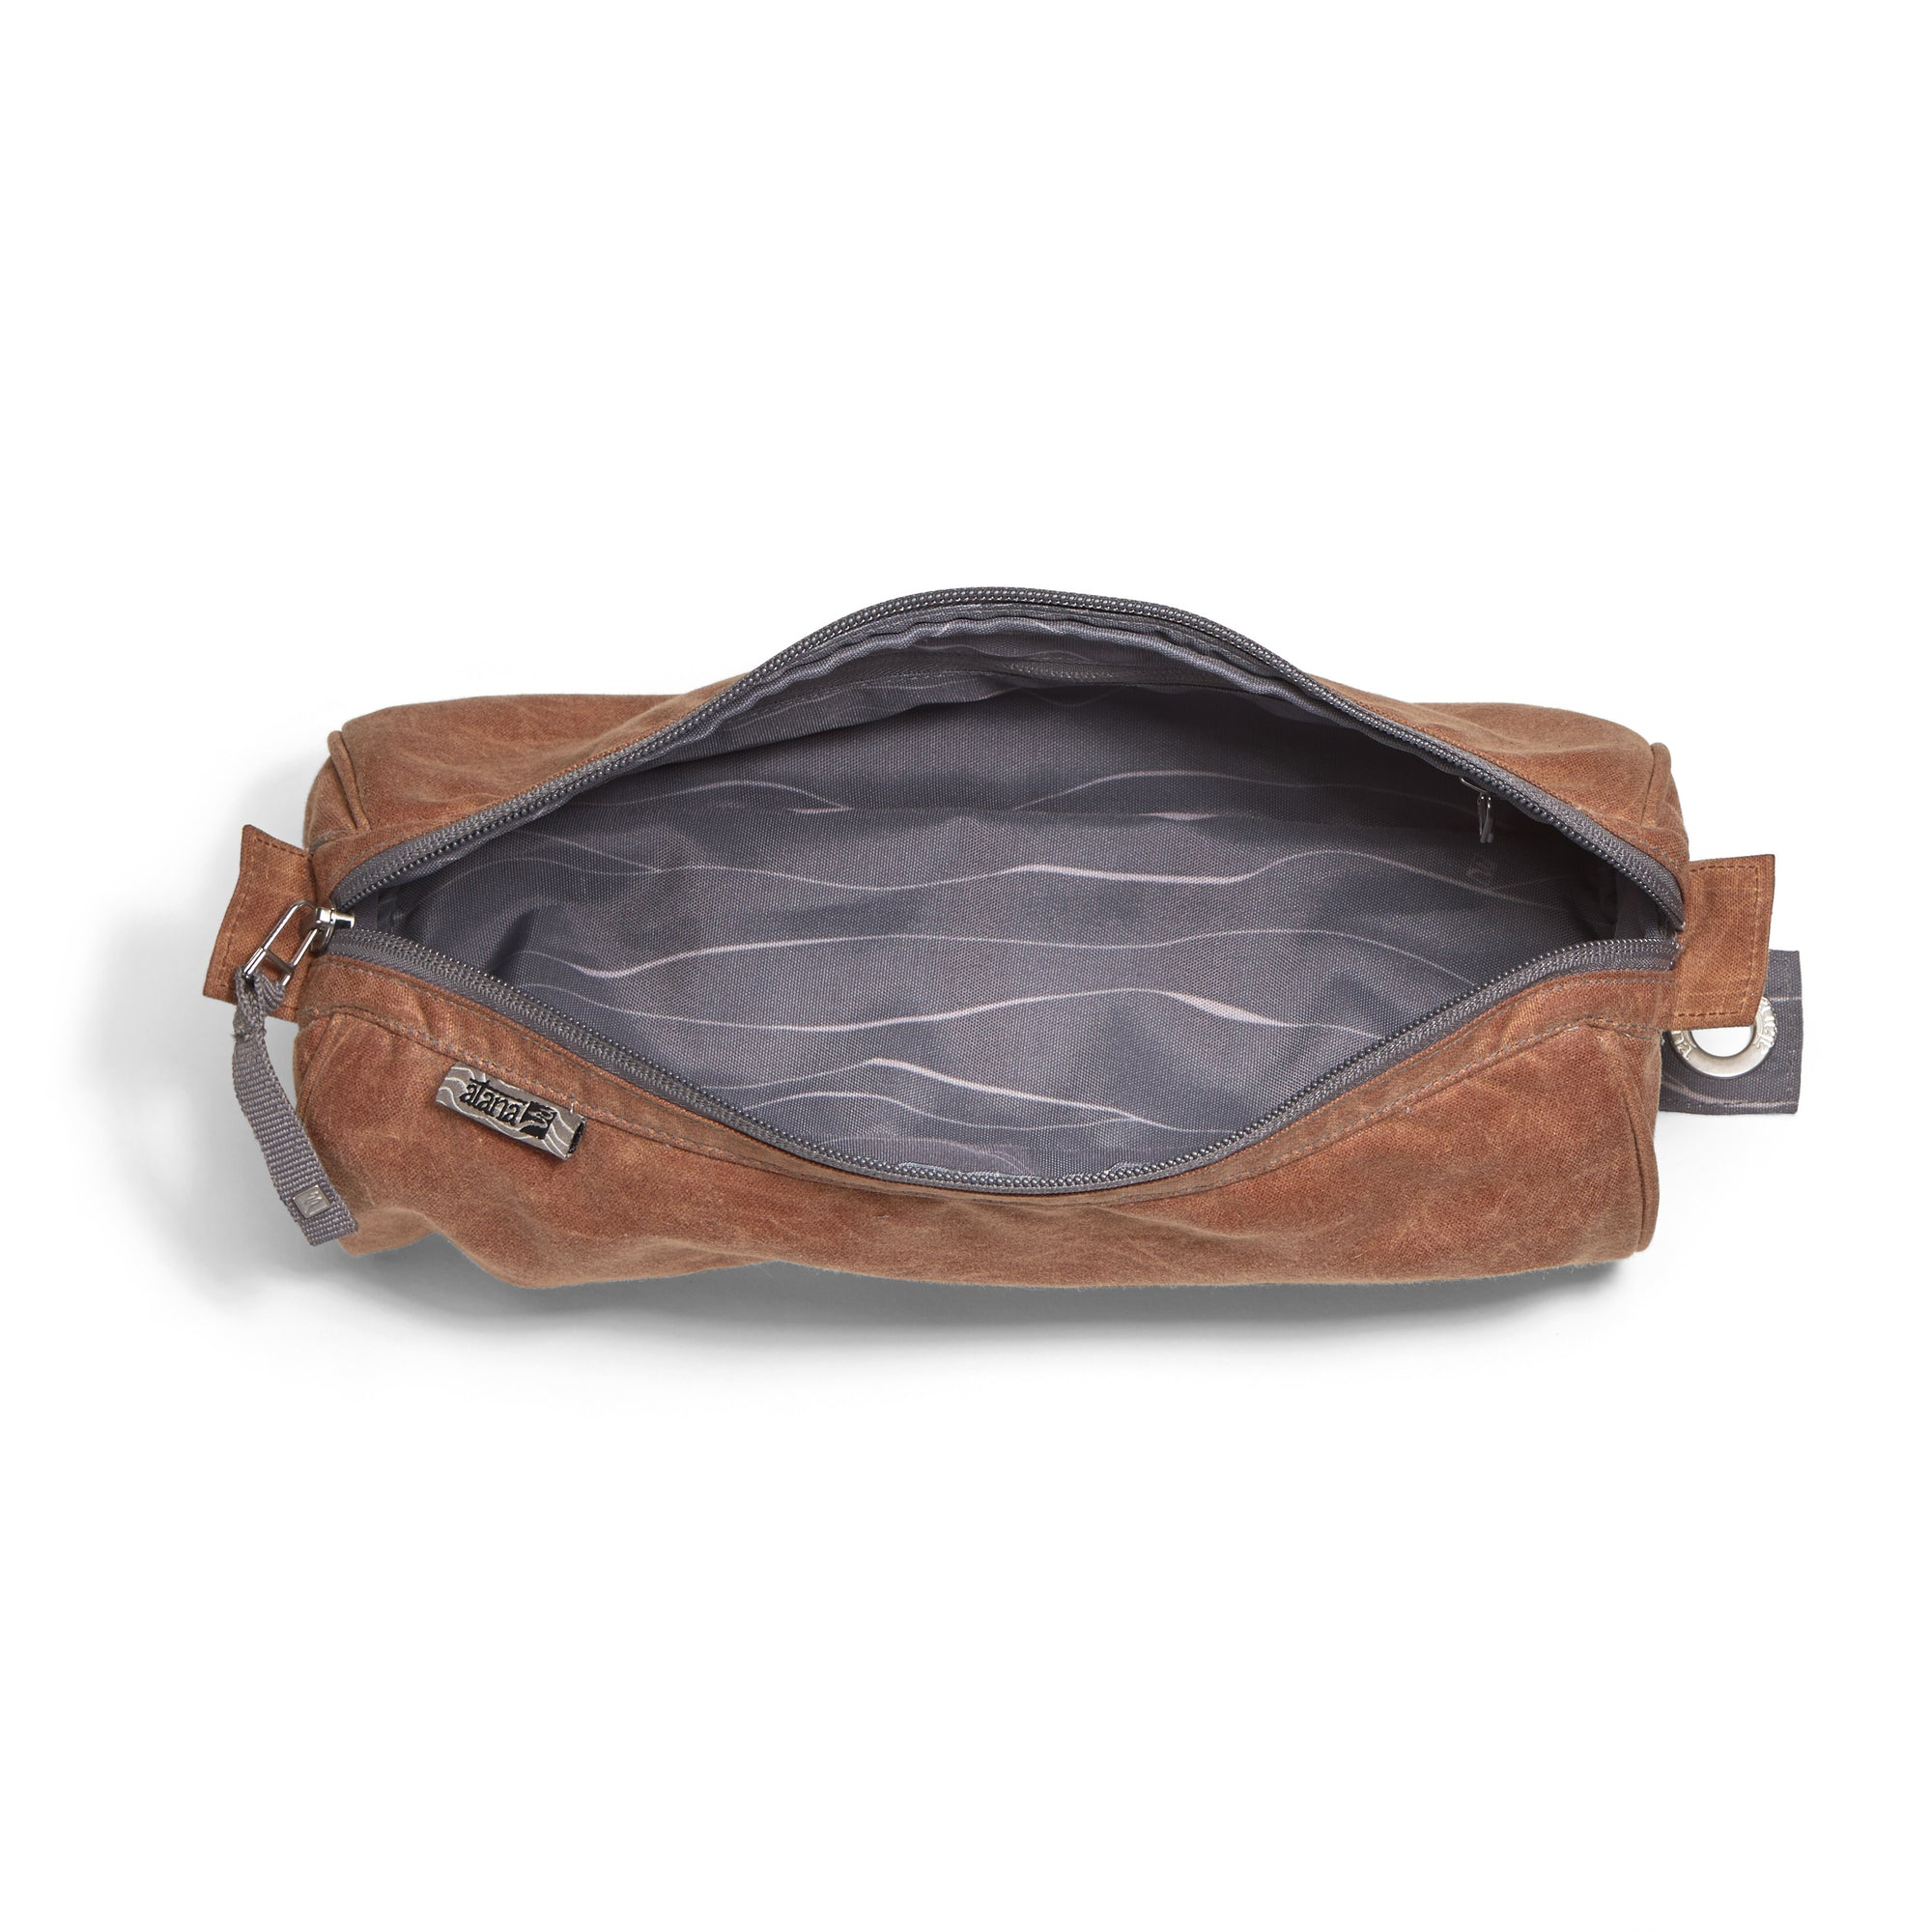 Organic waxed canvas Dopp kit, toiletry, cosmetic bag. Gray topo liner made from recycled polyester - aTana Stowe 12""